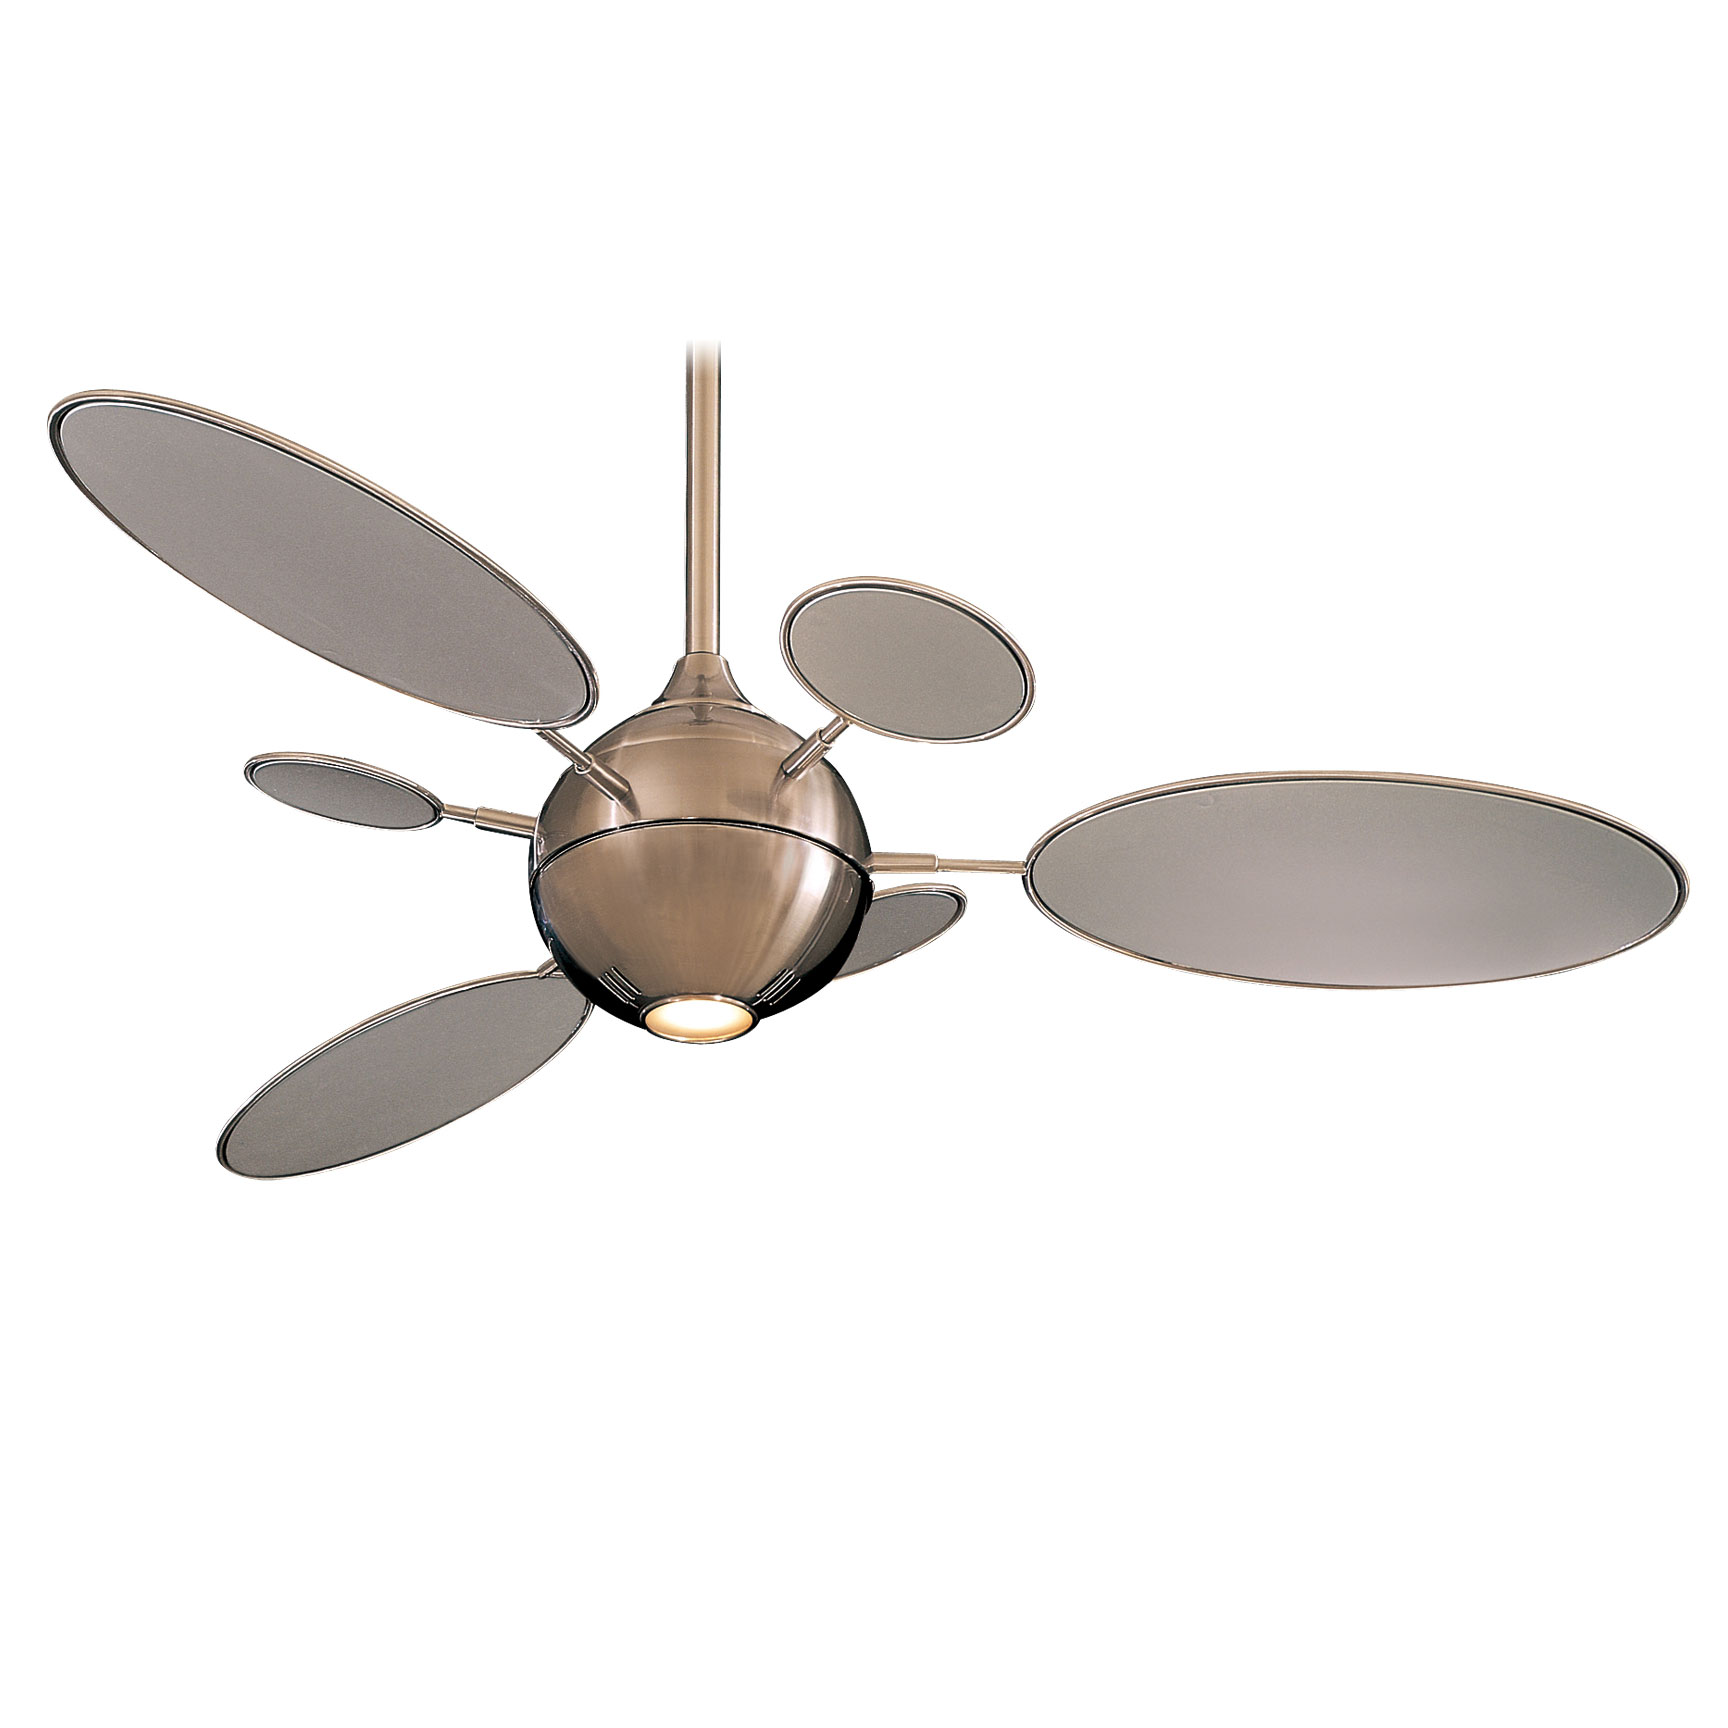 Cirque Ceiling Fan By Minka Aire F596 Bn